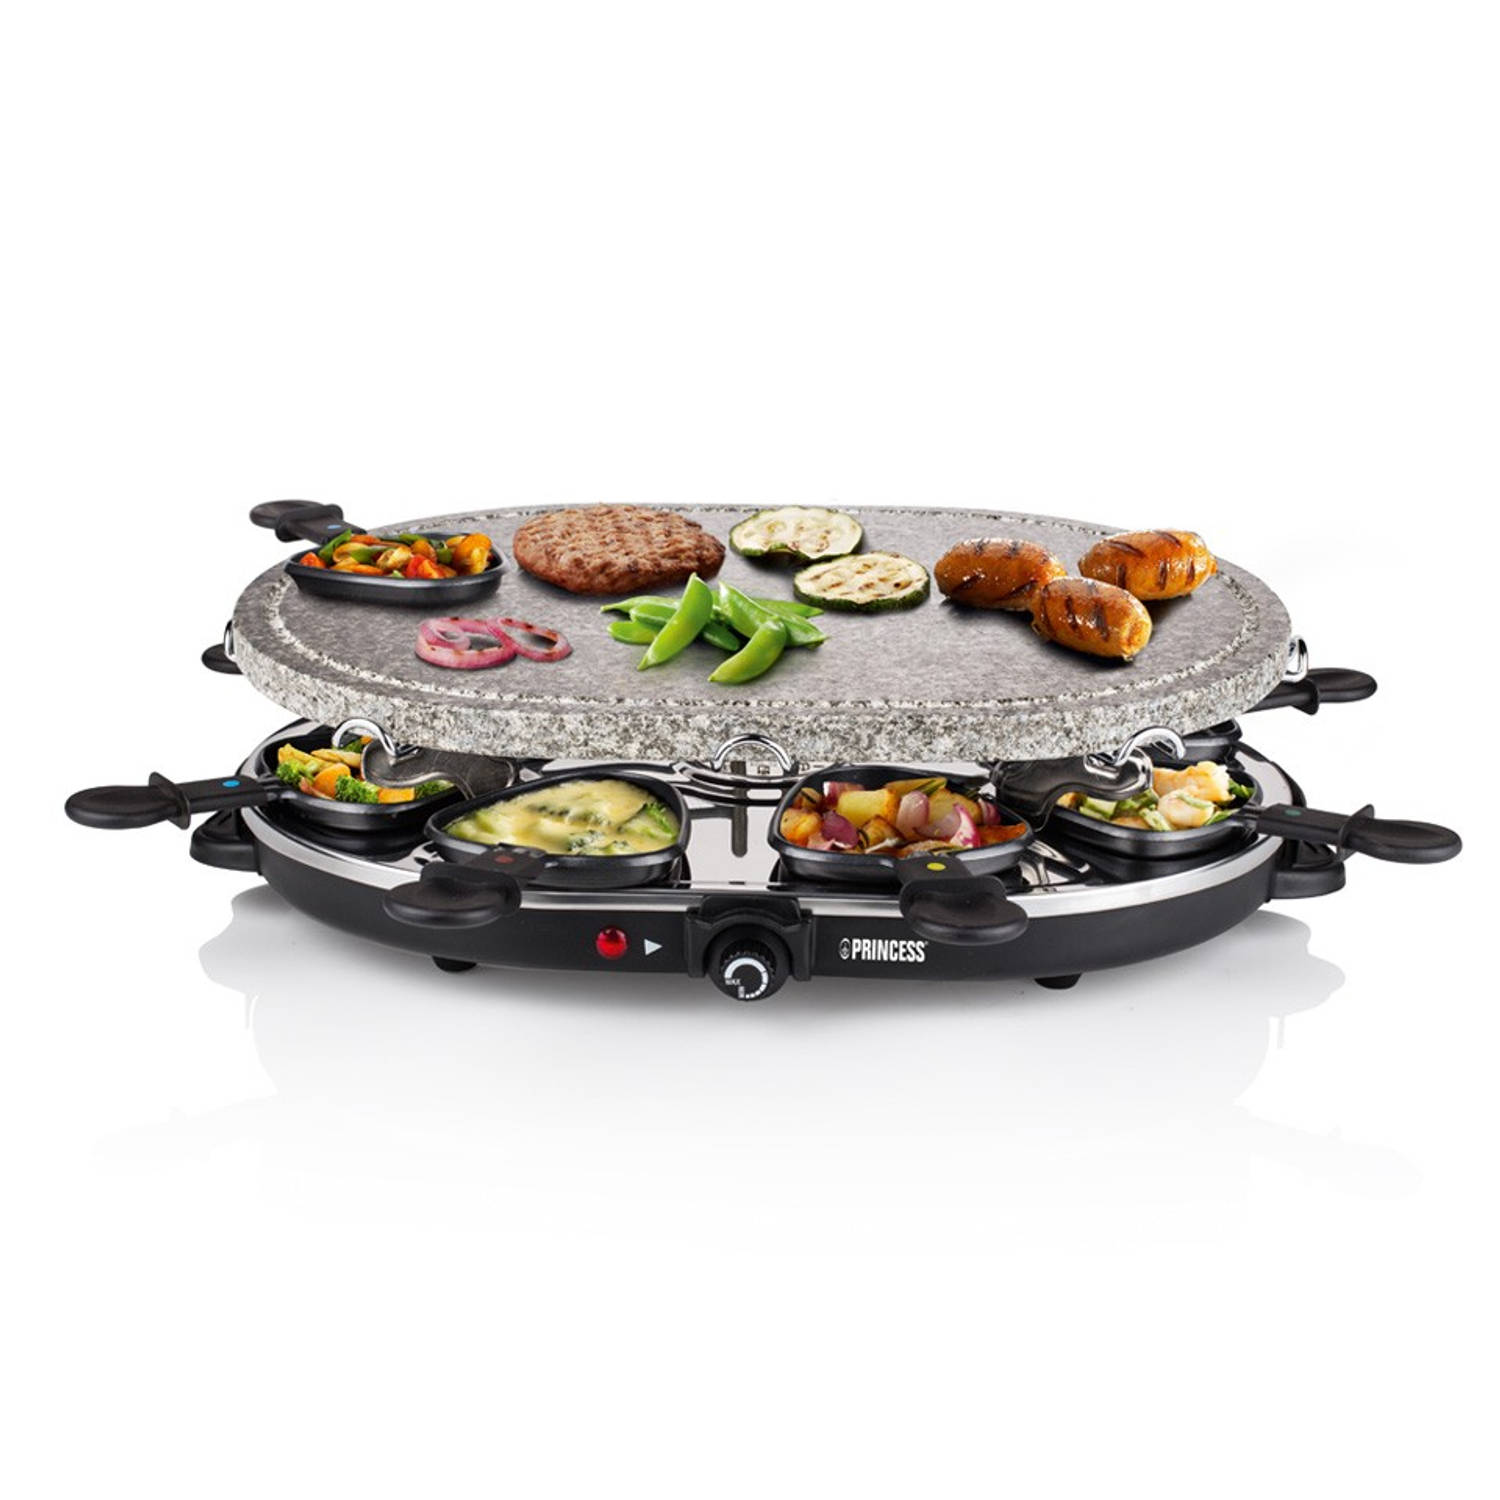 Princess steengrill/raclette 162720